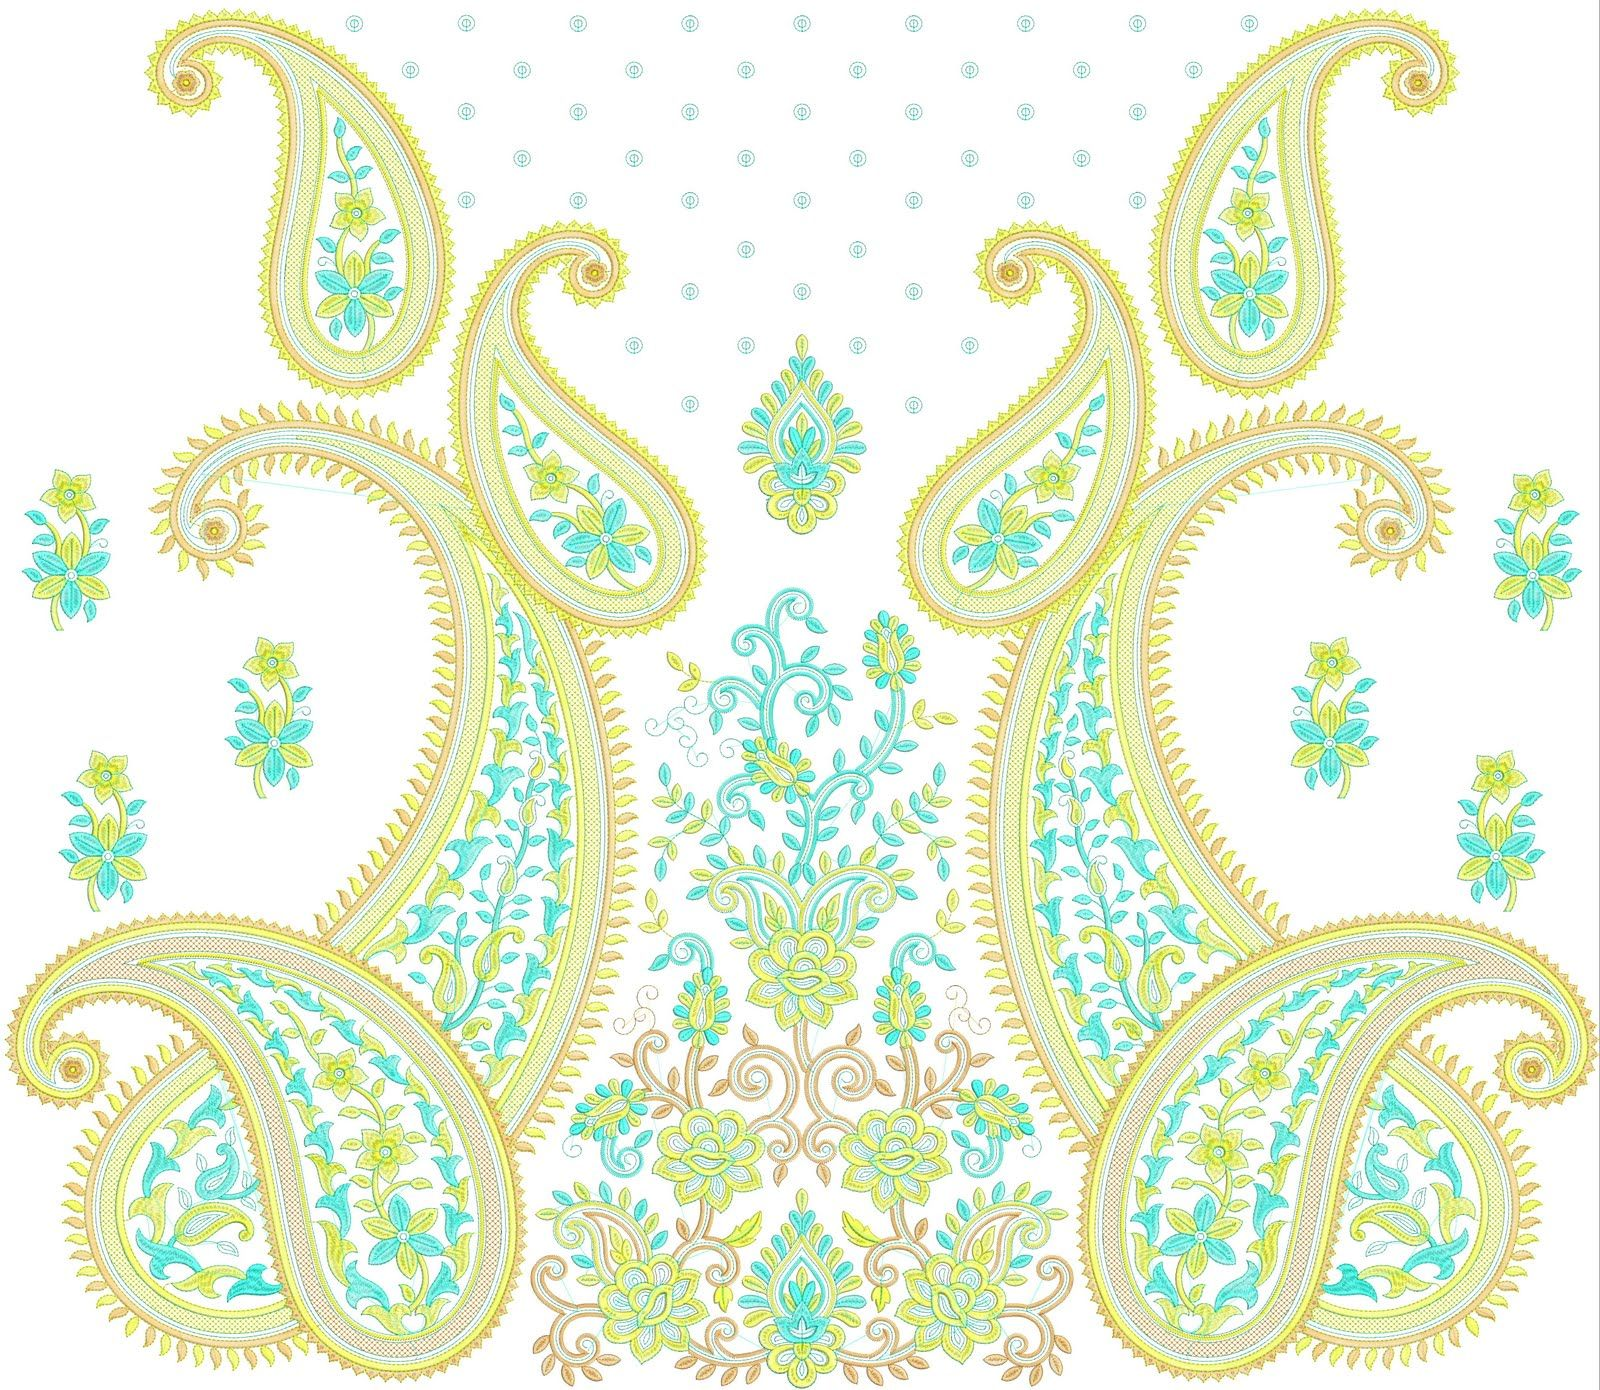 Pakistanihandembroiderydesign saree embroidery designs 0 pakistanihandembroiderydesign saree embroidery designs 0 comments bankloansurffo Images